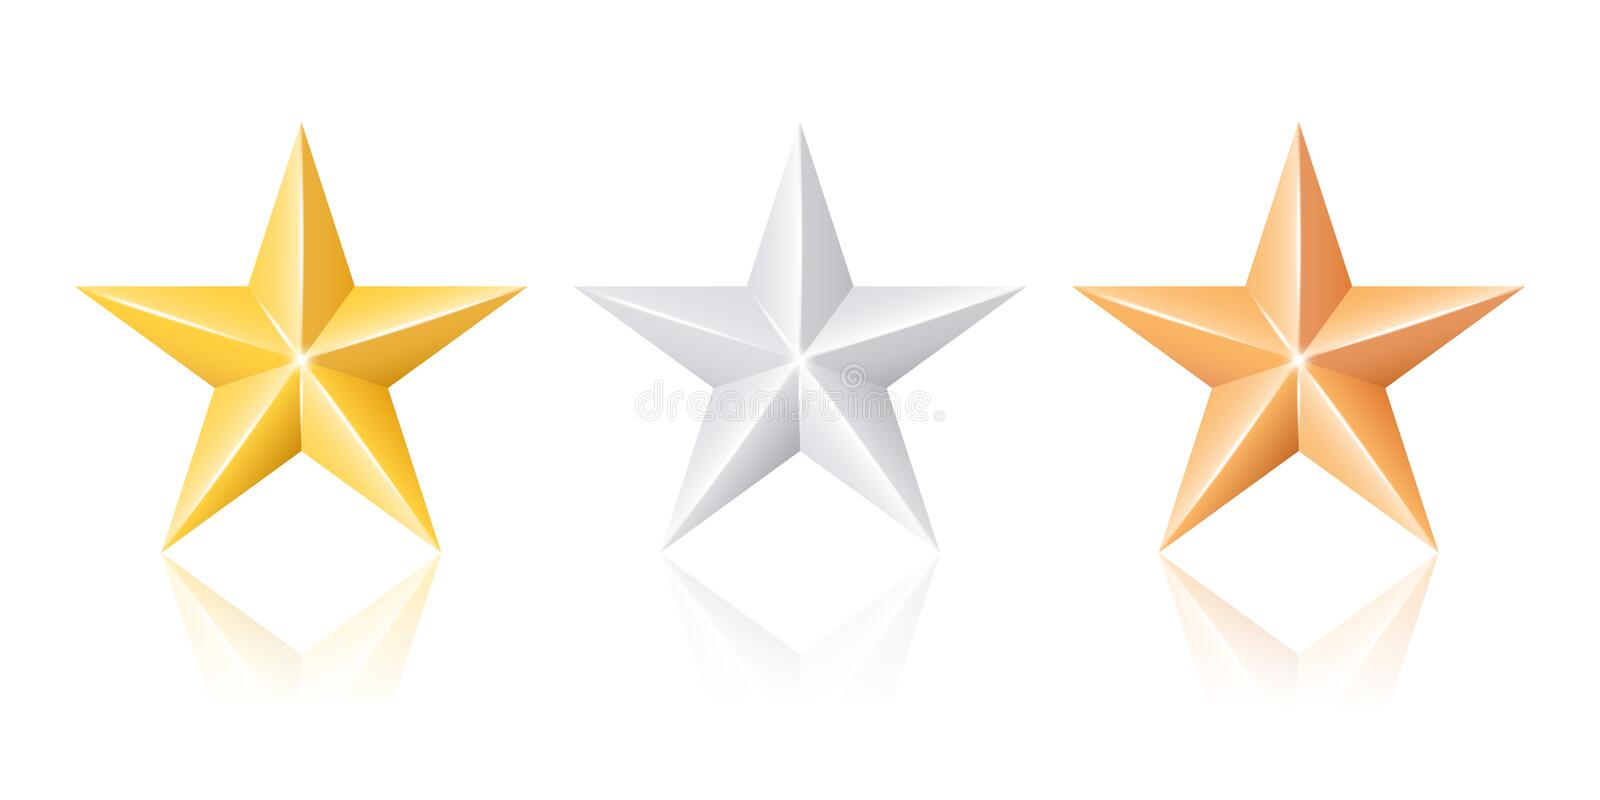 gold silver and bronze stars stock vector illustration of quality rh dreamstime com Silver Star Clip Art Bronze Star with V